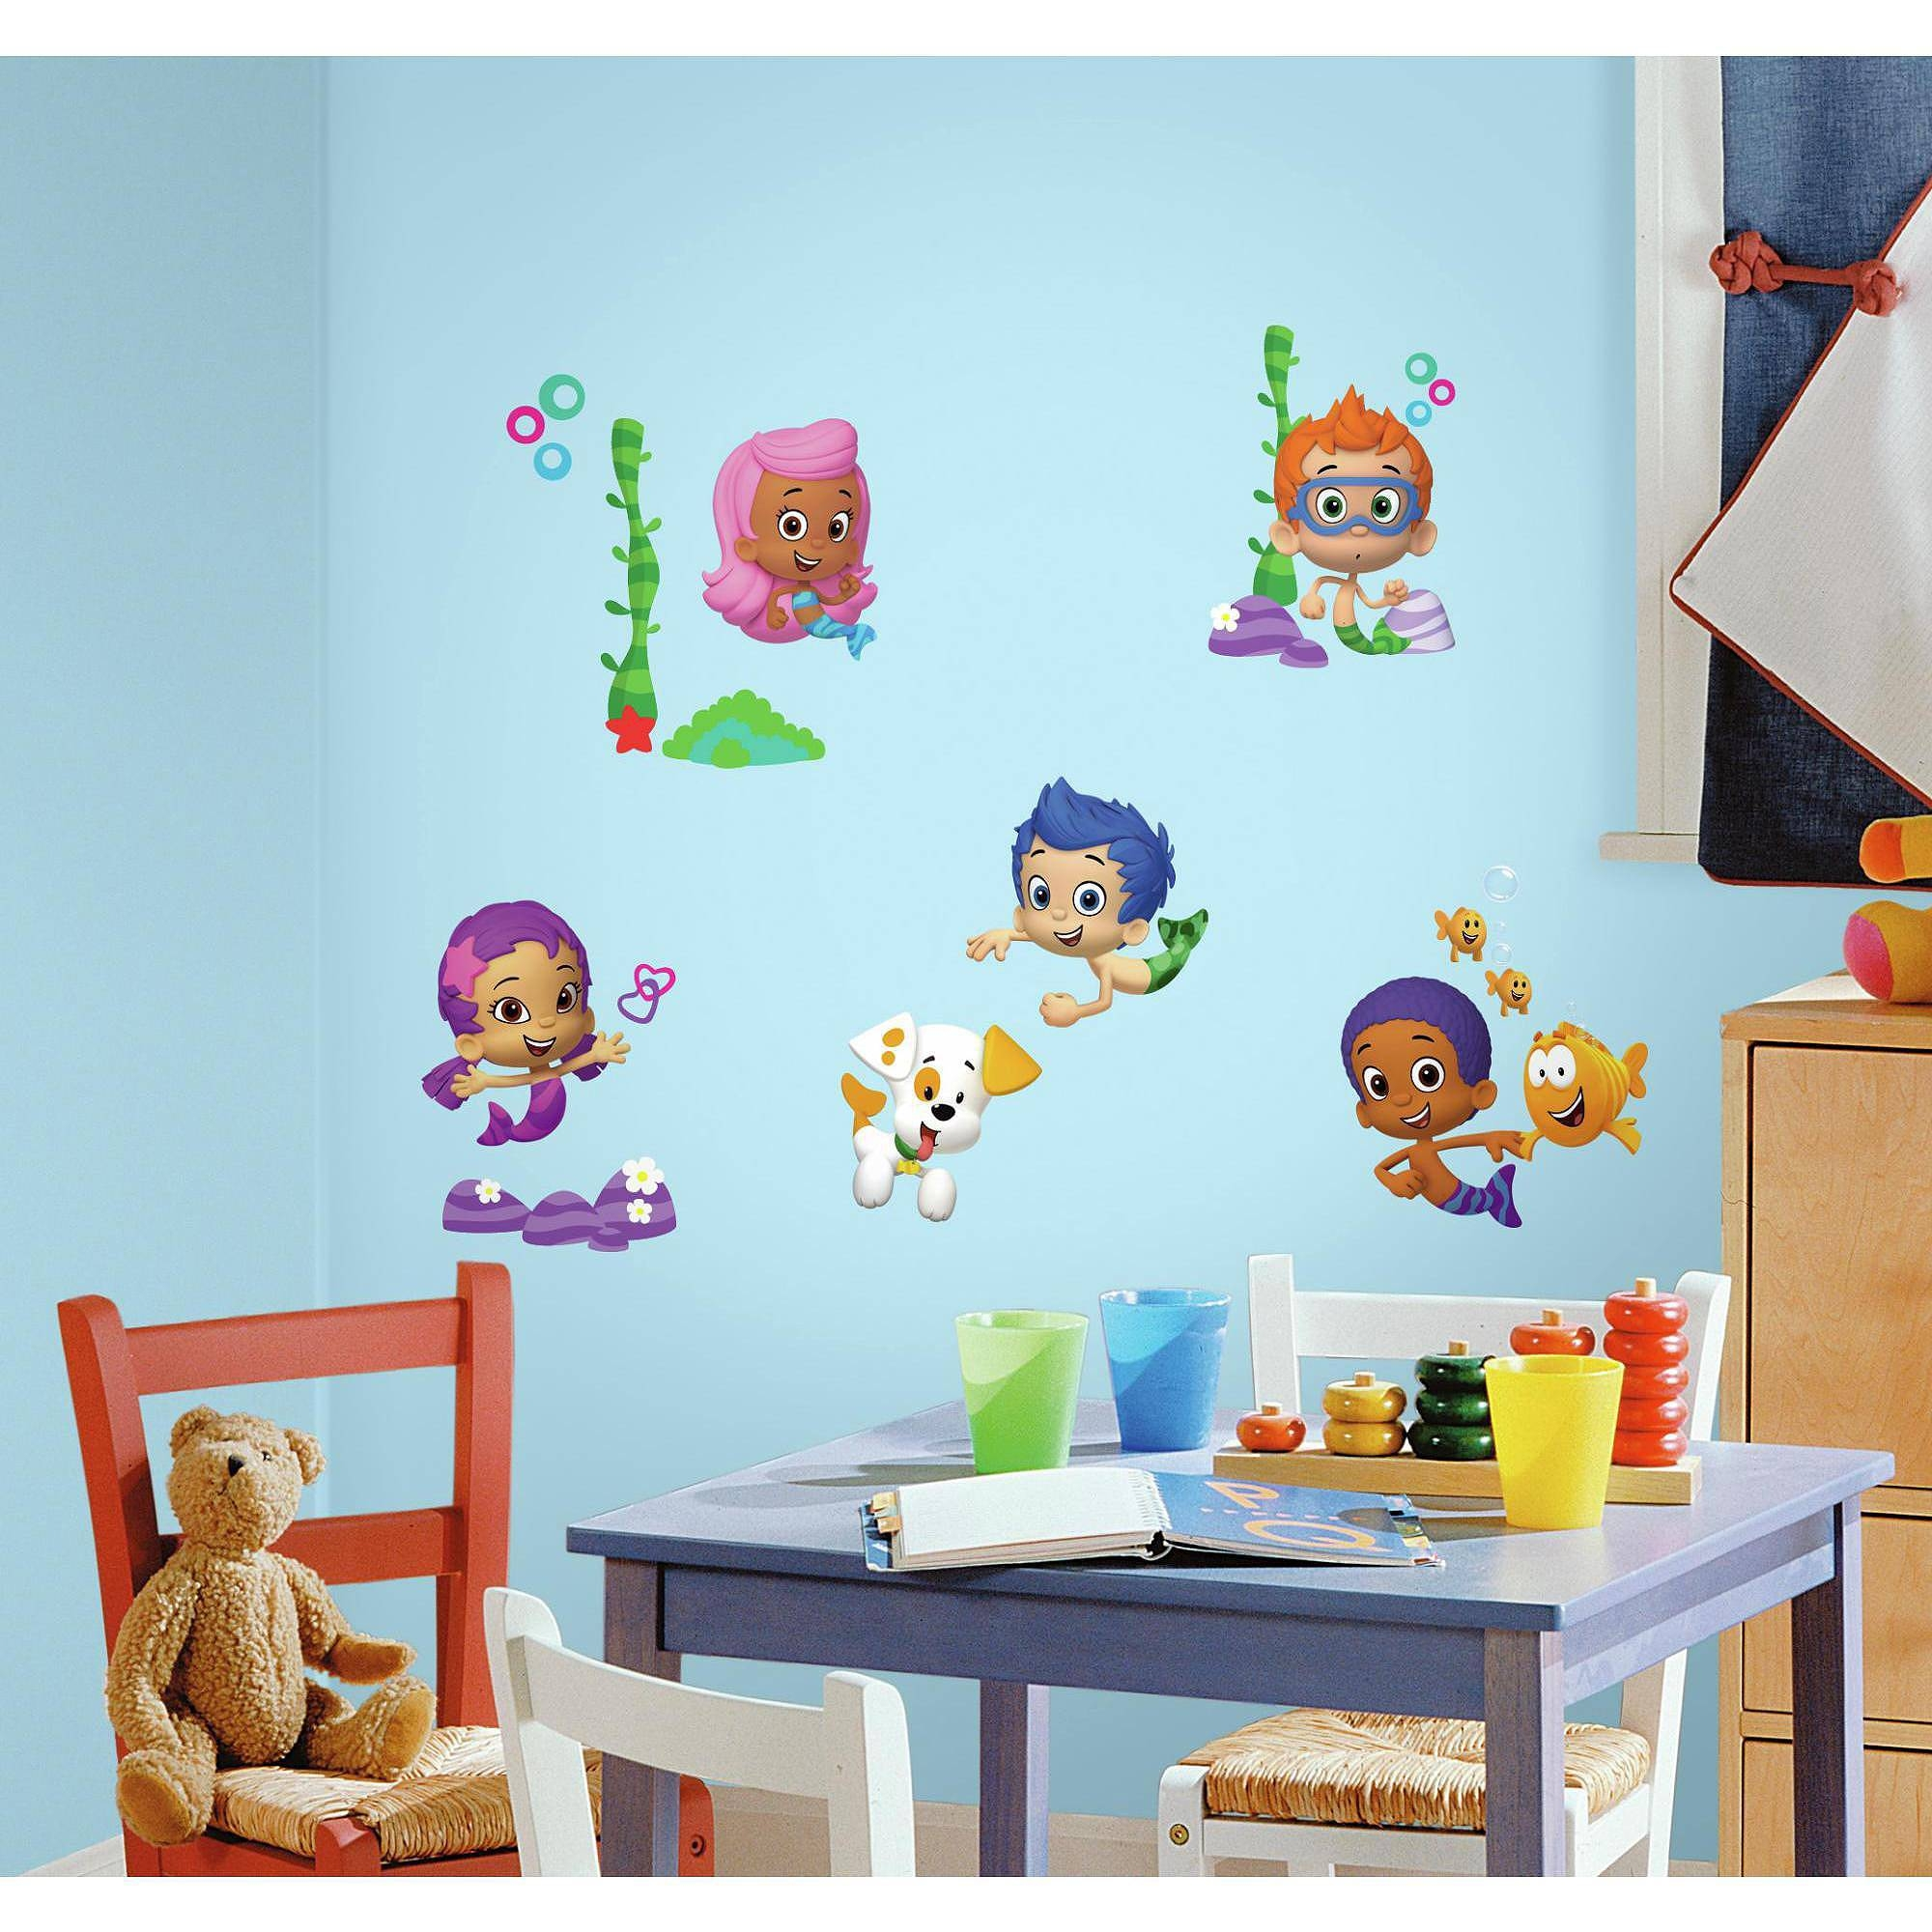 Bubble Guppies Peel And Stick Wall Decals – Walmart With Current Walmart Wall Stickers (View 3 of 25)